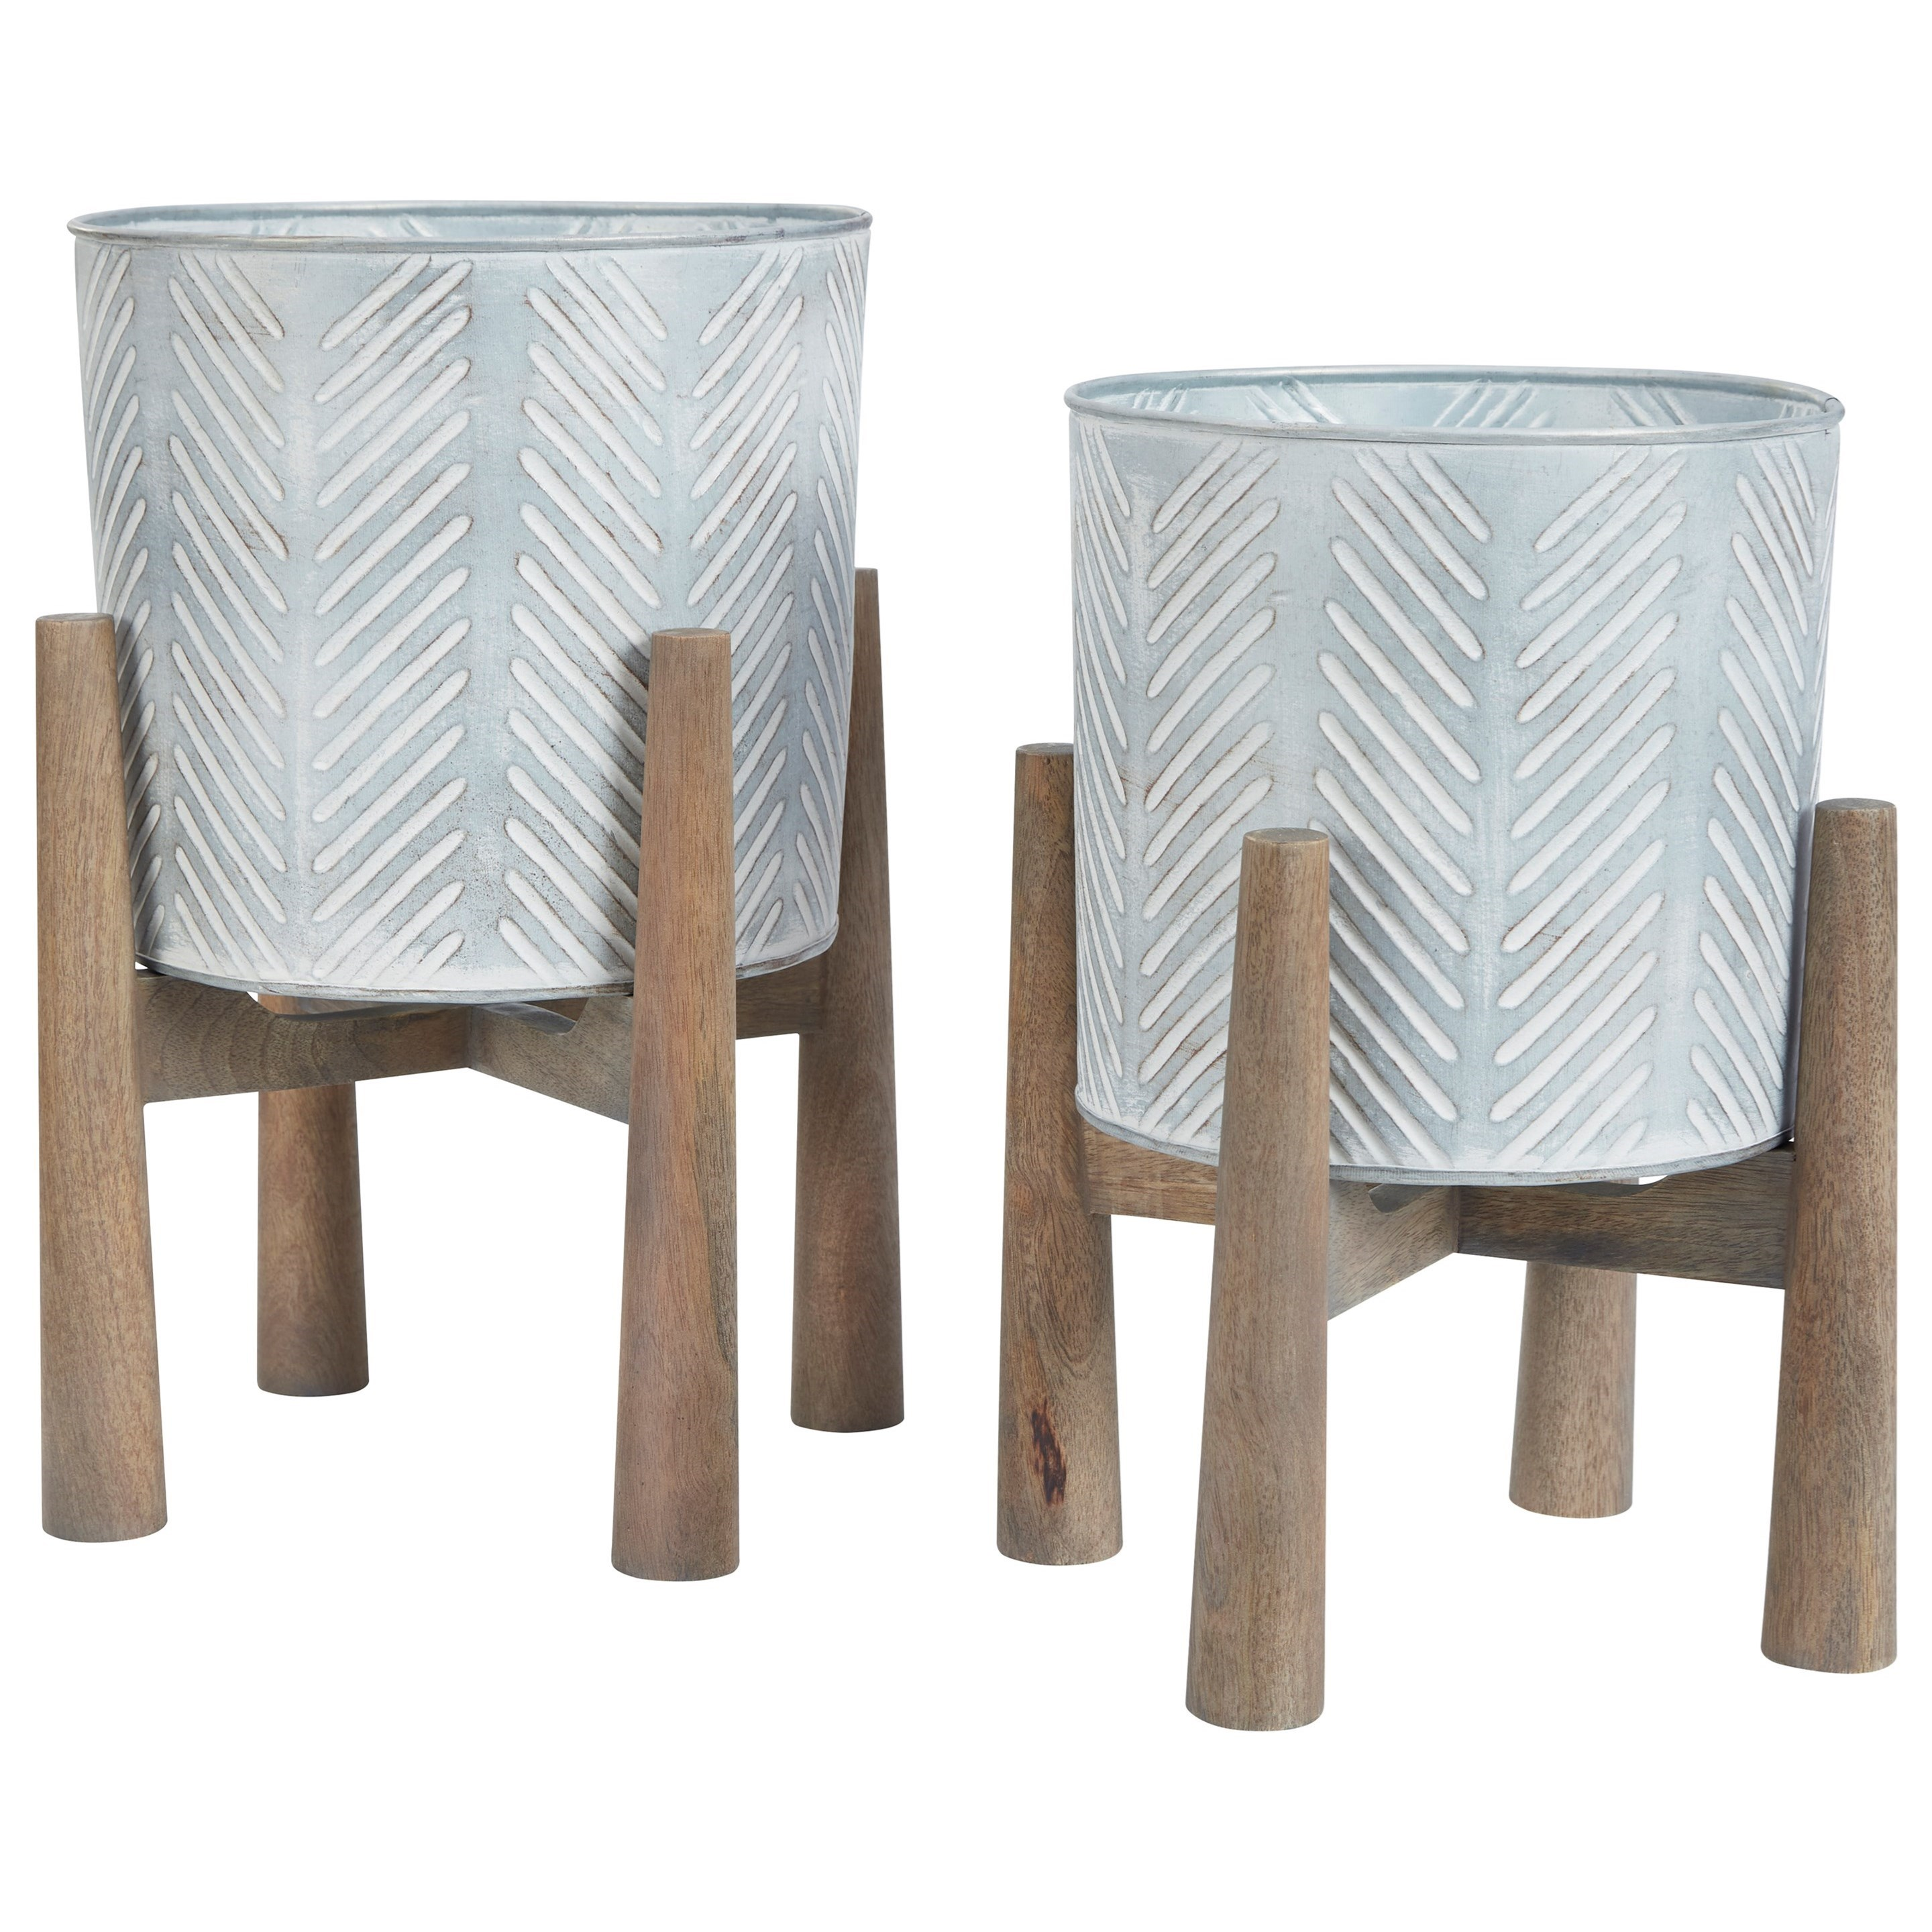 Accents Domele Antique Gray/Brown Planter Set by Signature Design by Ashley at Rife's Home Furniture